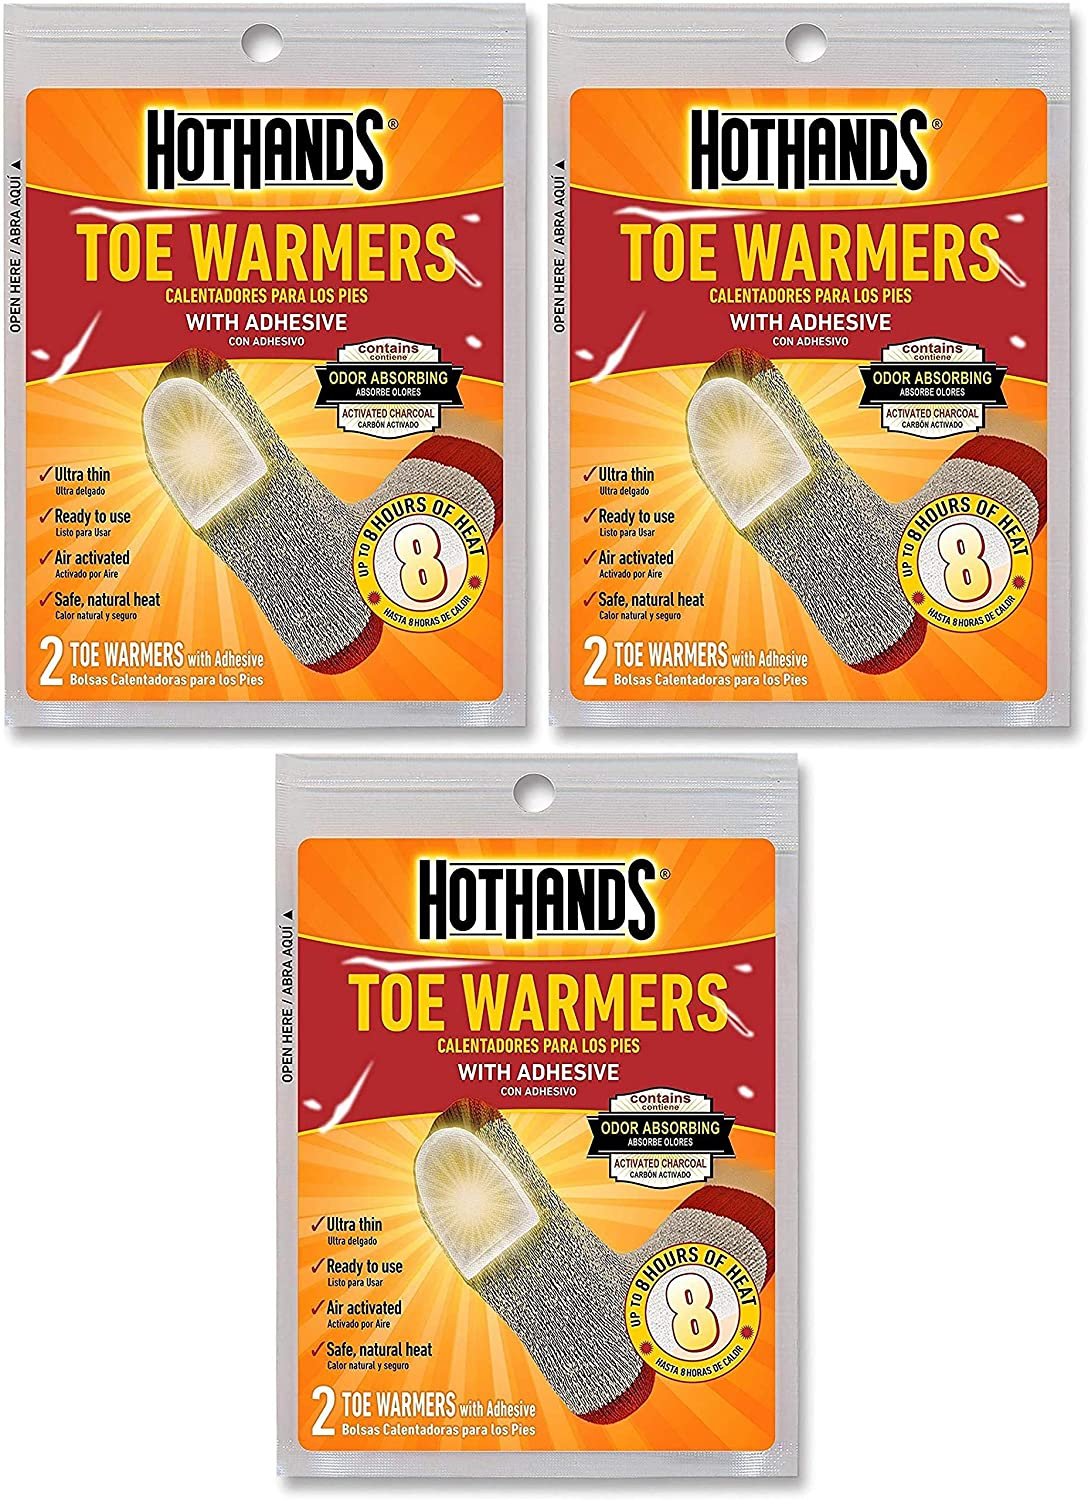 HotHands Toe Warmers (5 Pair)